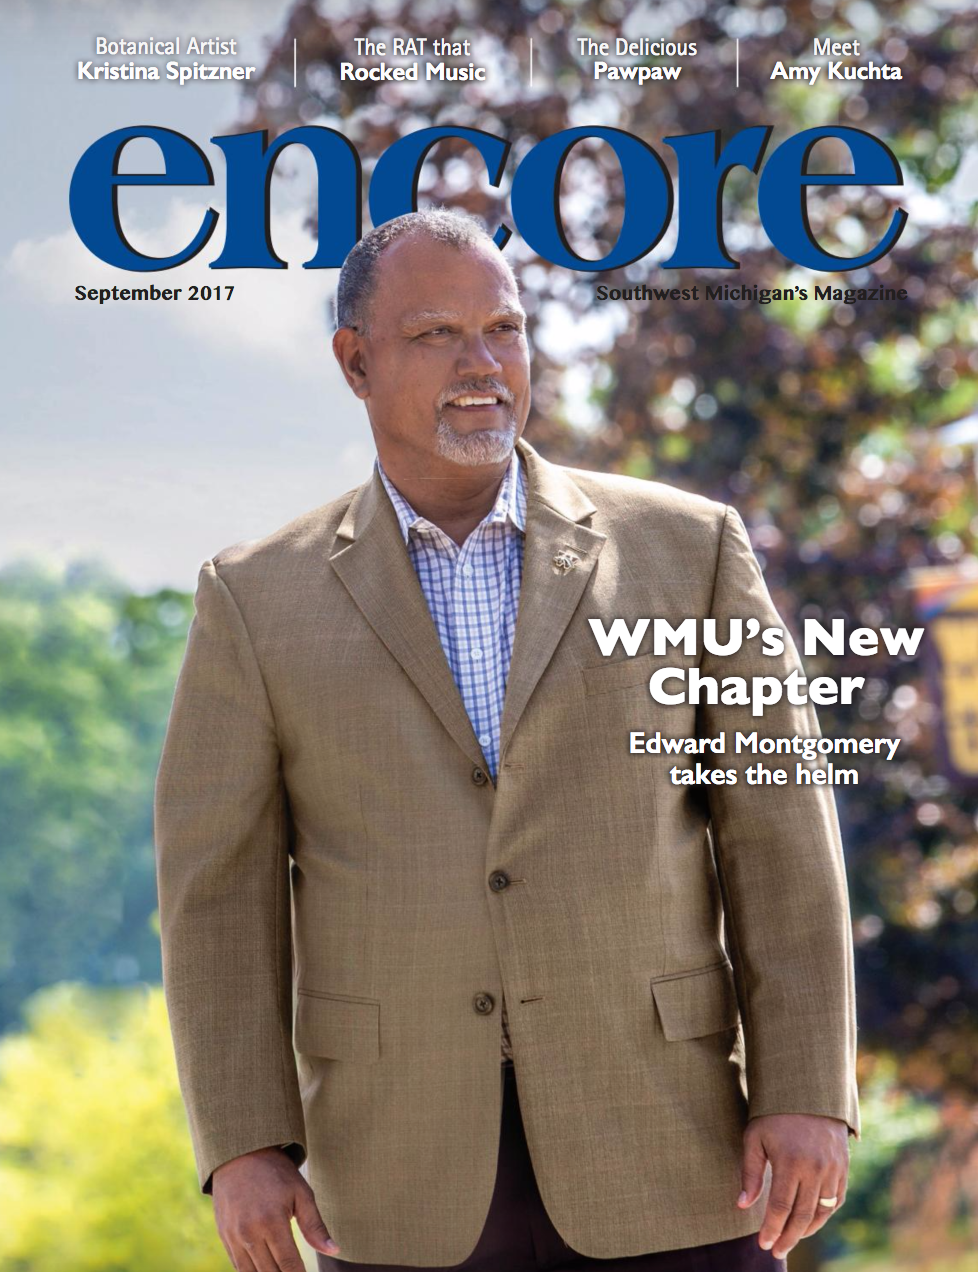 This Month's full issue of ENCORE Magazine features an interview with WMU's new leader Edward Montgomery.